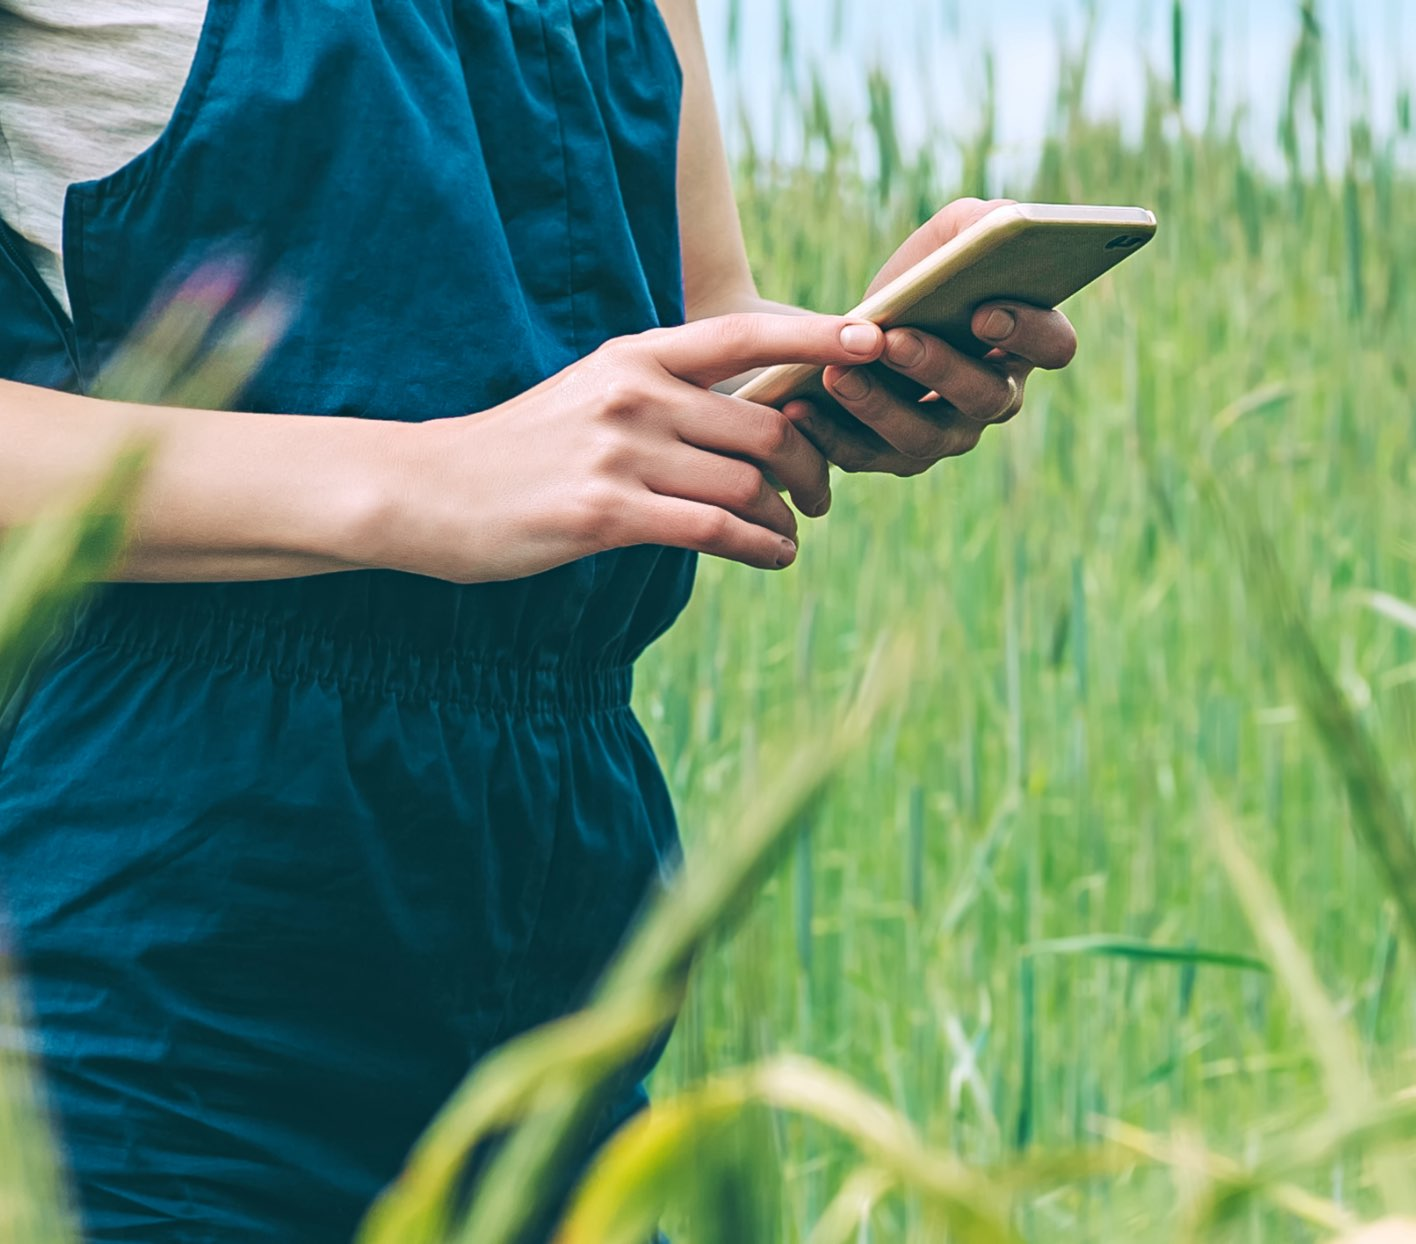 A person standing in grass holding a cell phone